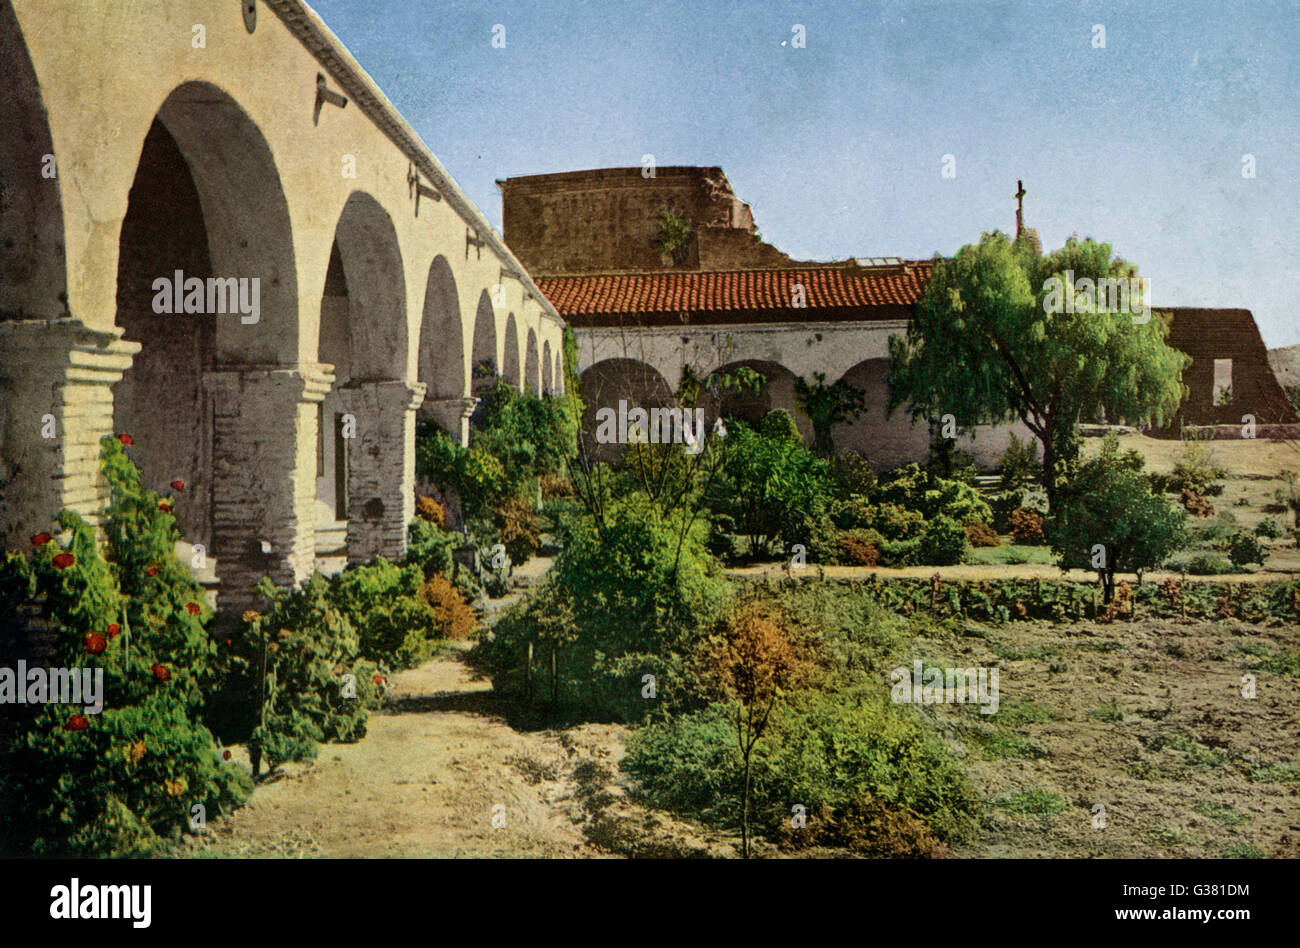 The remains of the Mission of San Juan Capistrano, badly  damaged by earthquake        Date: 1923 - Stock Image